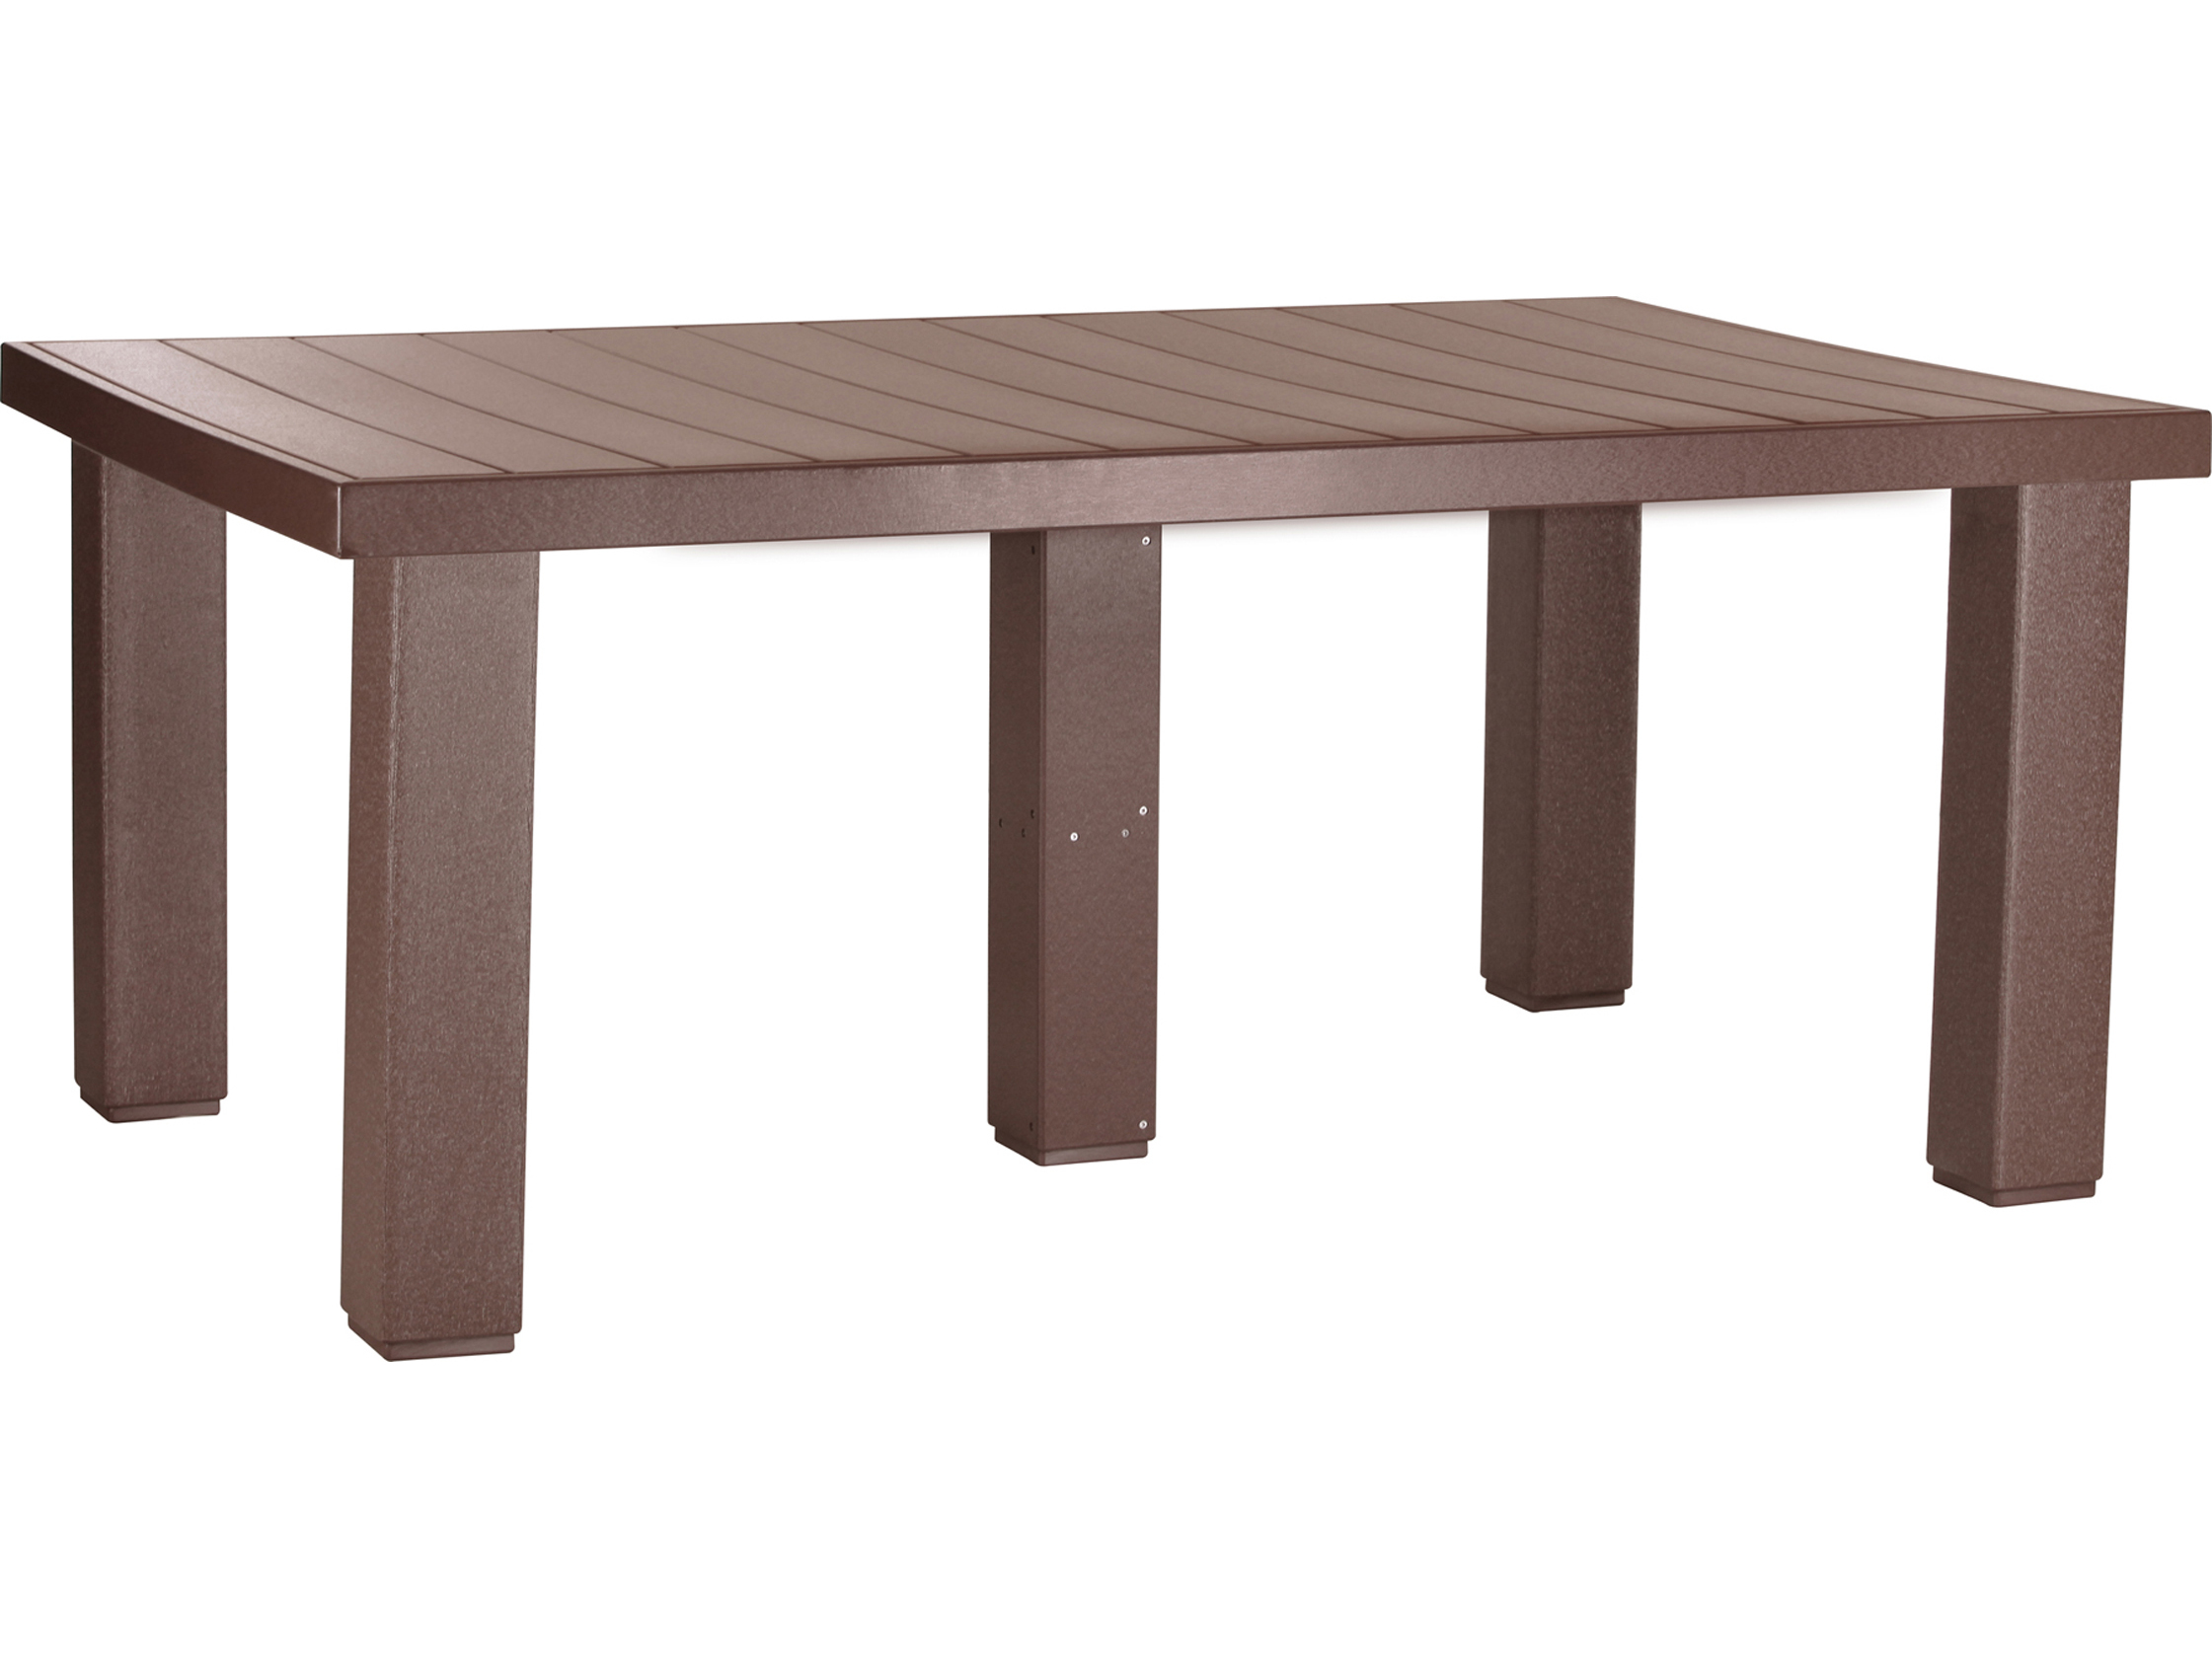 Luxcraft Recycled Plastic 4x6 Contemporary Table P46ct